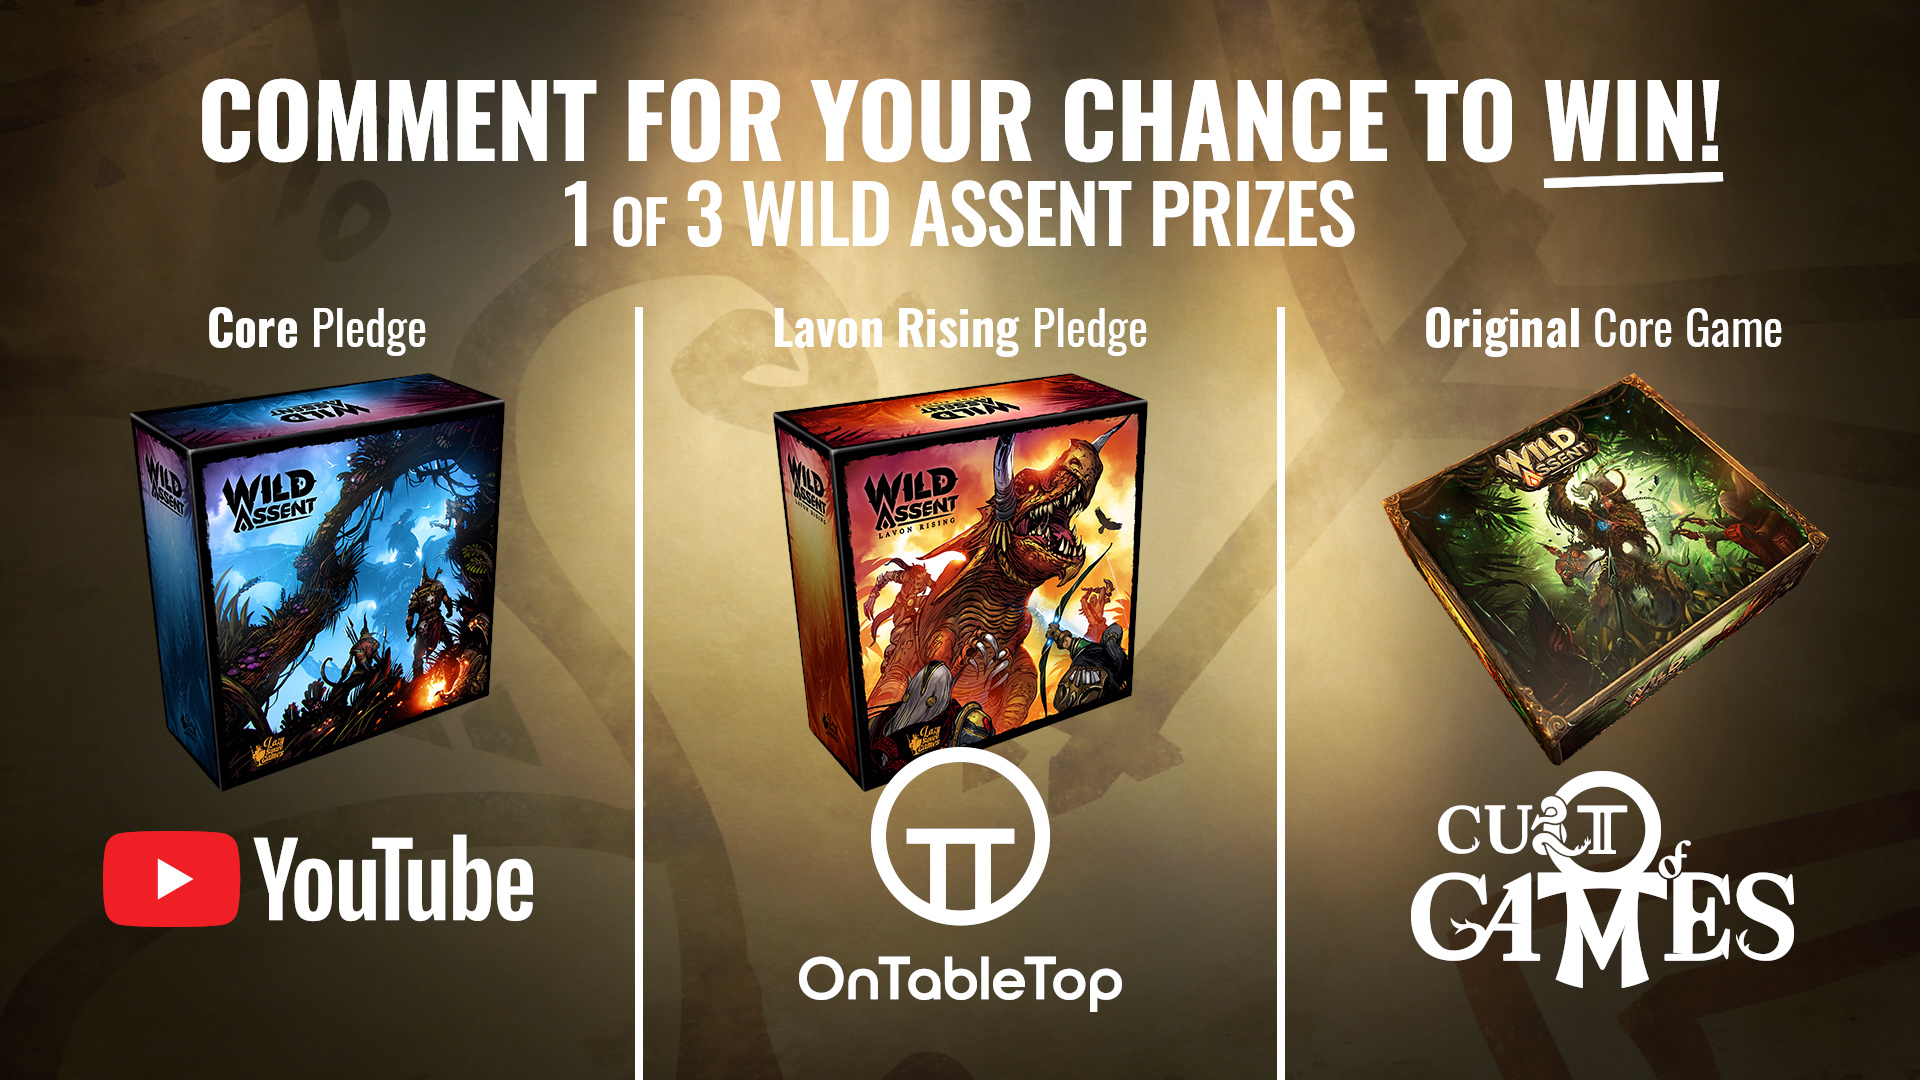 Wild_Assent_Week_OnTableTop_Prizes_To_Be_Won-60dad77d4a4b7